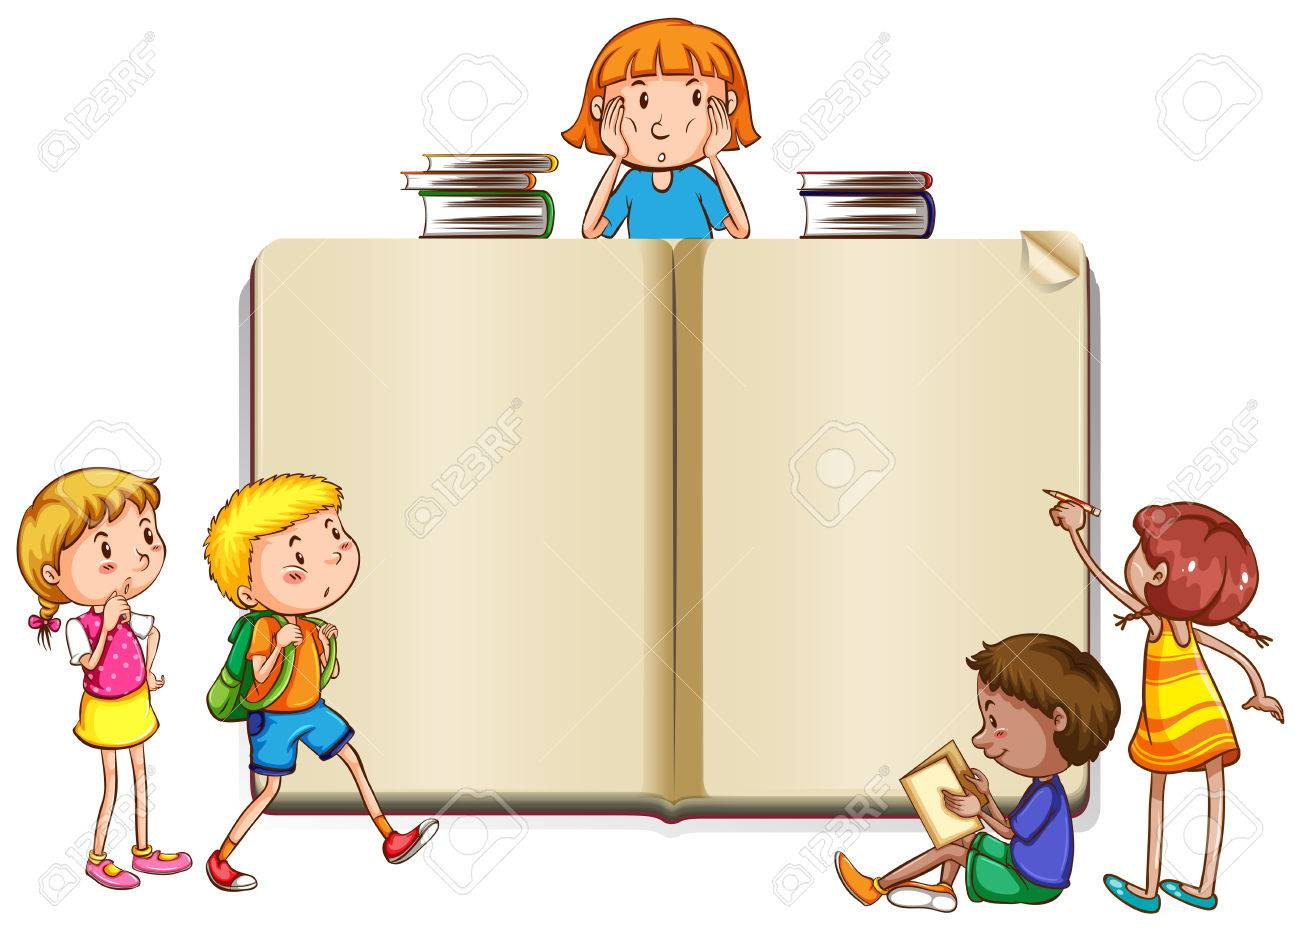 Border template with kids reading books illustration.